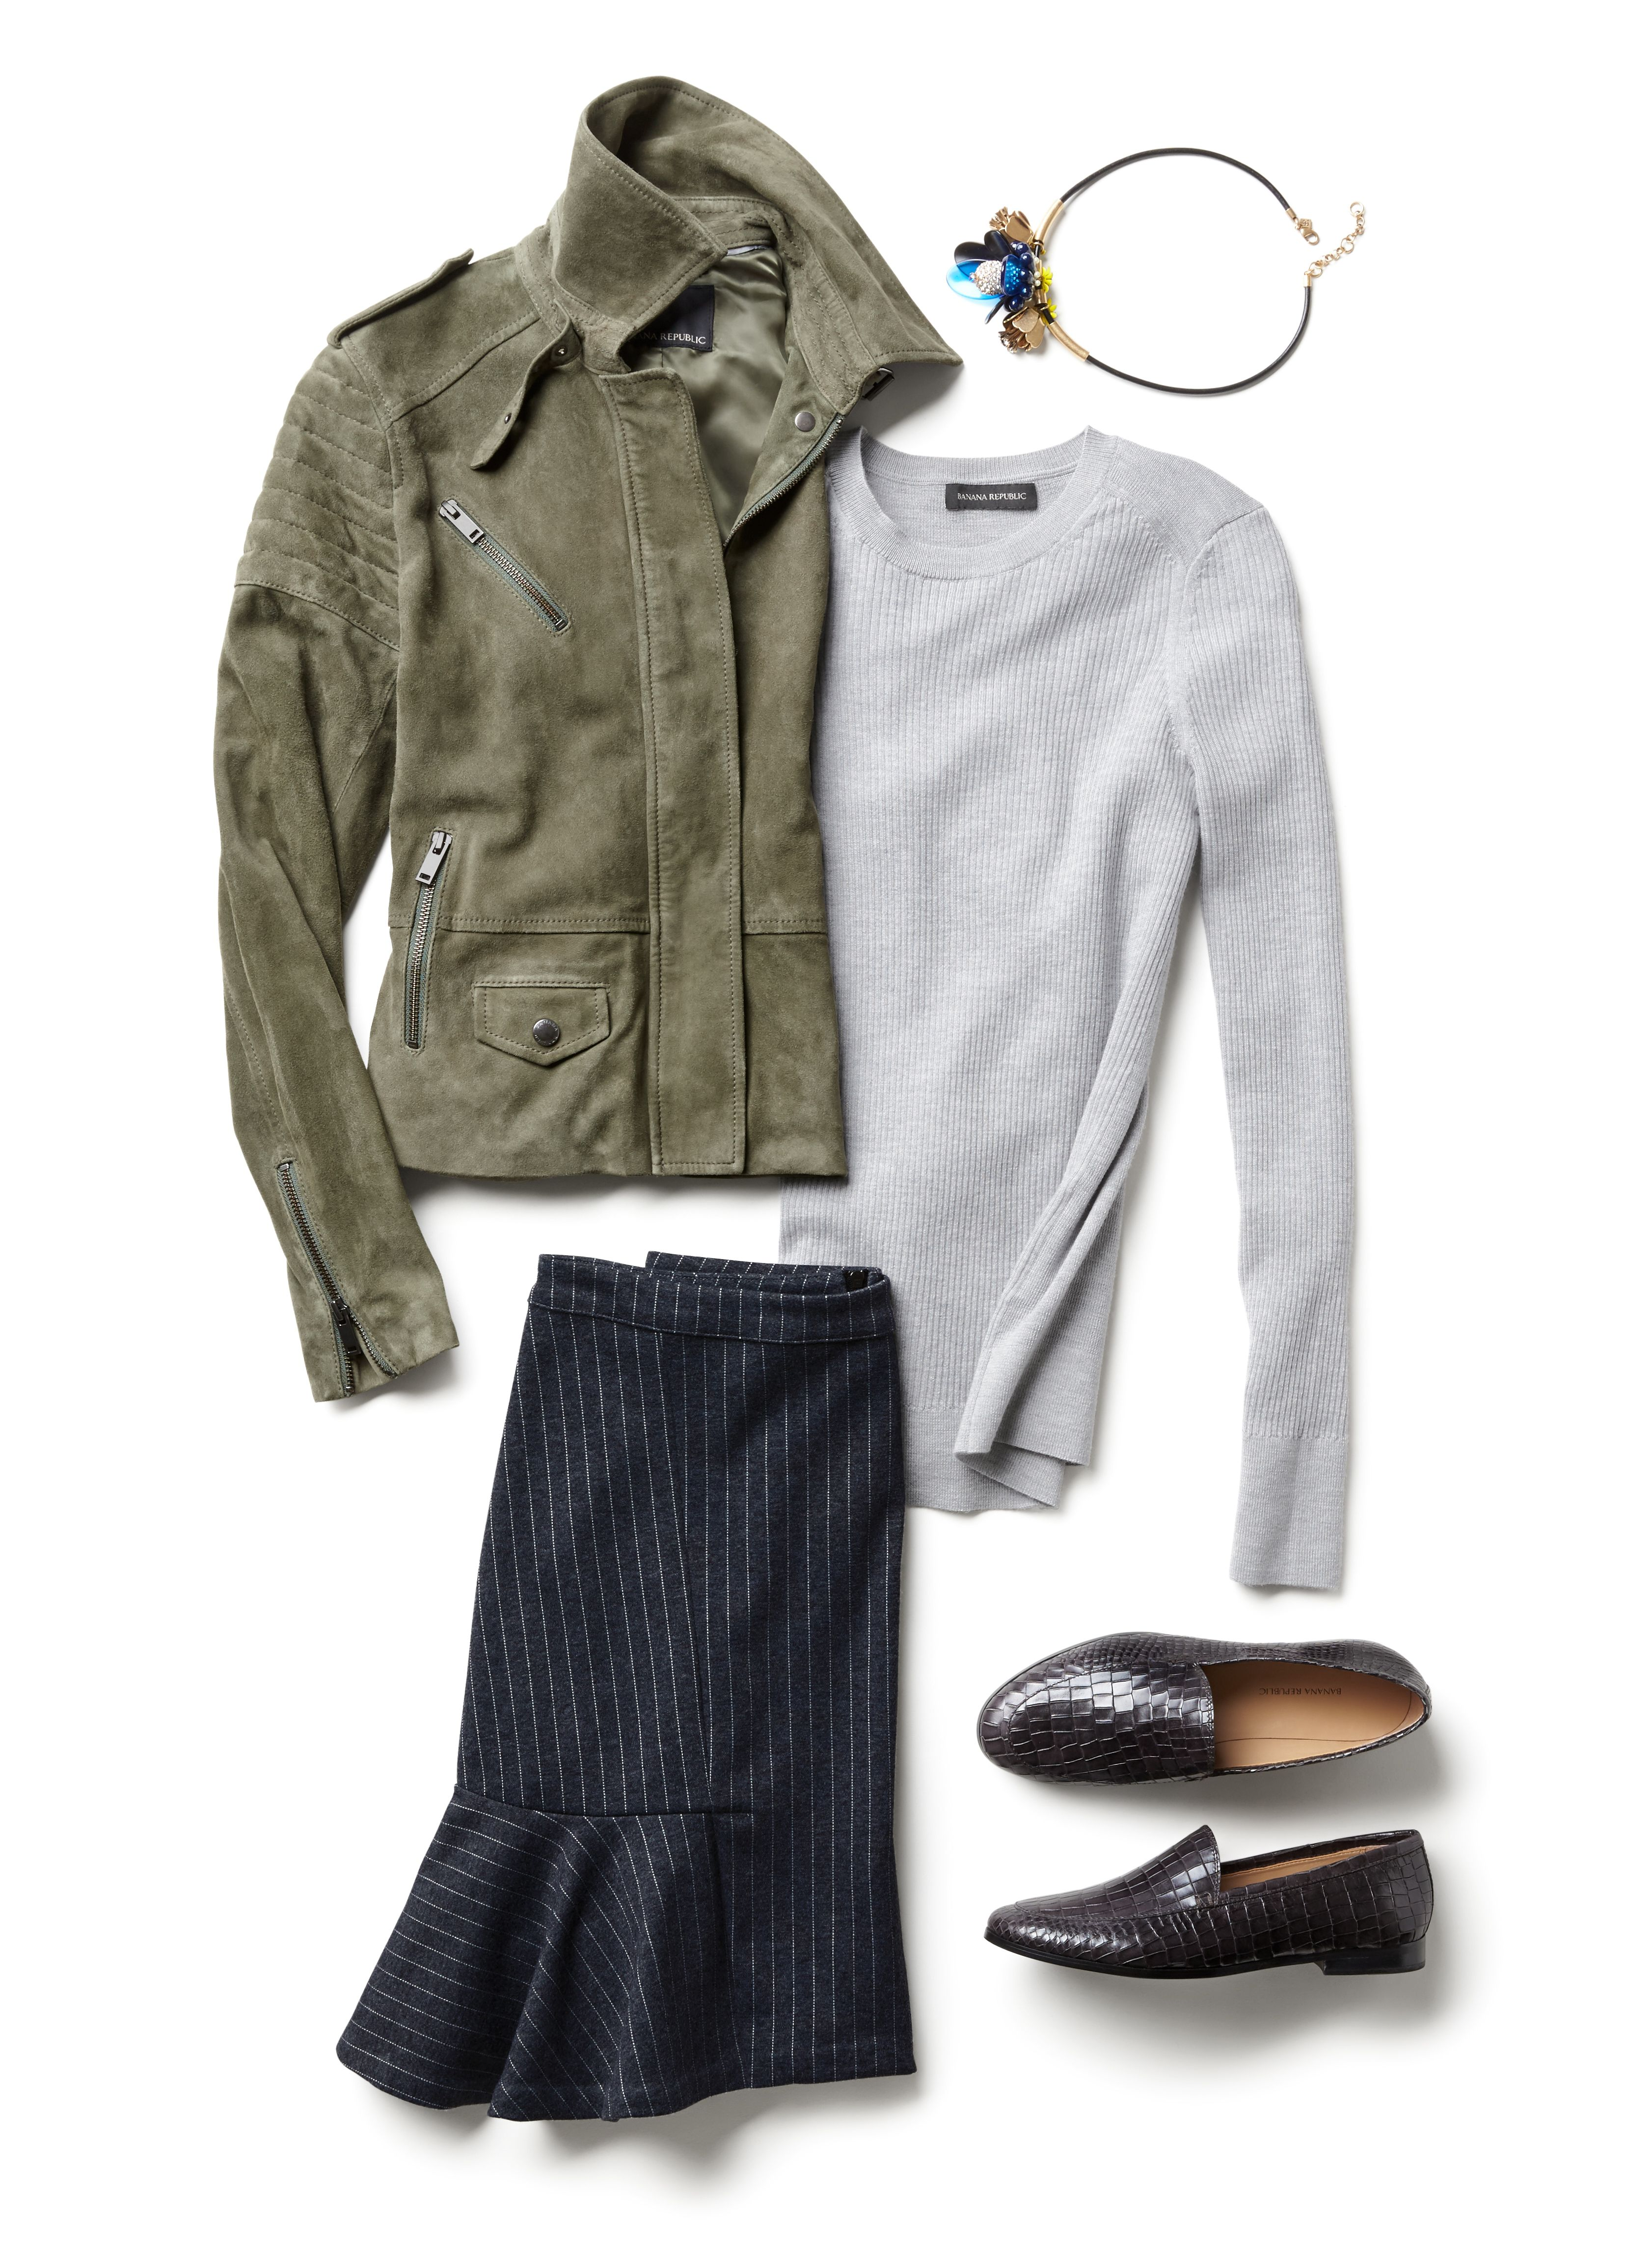 Add a ultra feminine twist to your menswear inspired look. Pair out classic stripe skirt with flared hem detail with a traditional suede moto jacket and a soft tee for an effortlessly chic, go anywhere look | Banana Republic